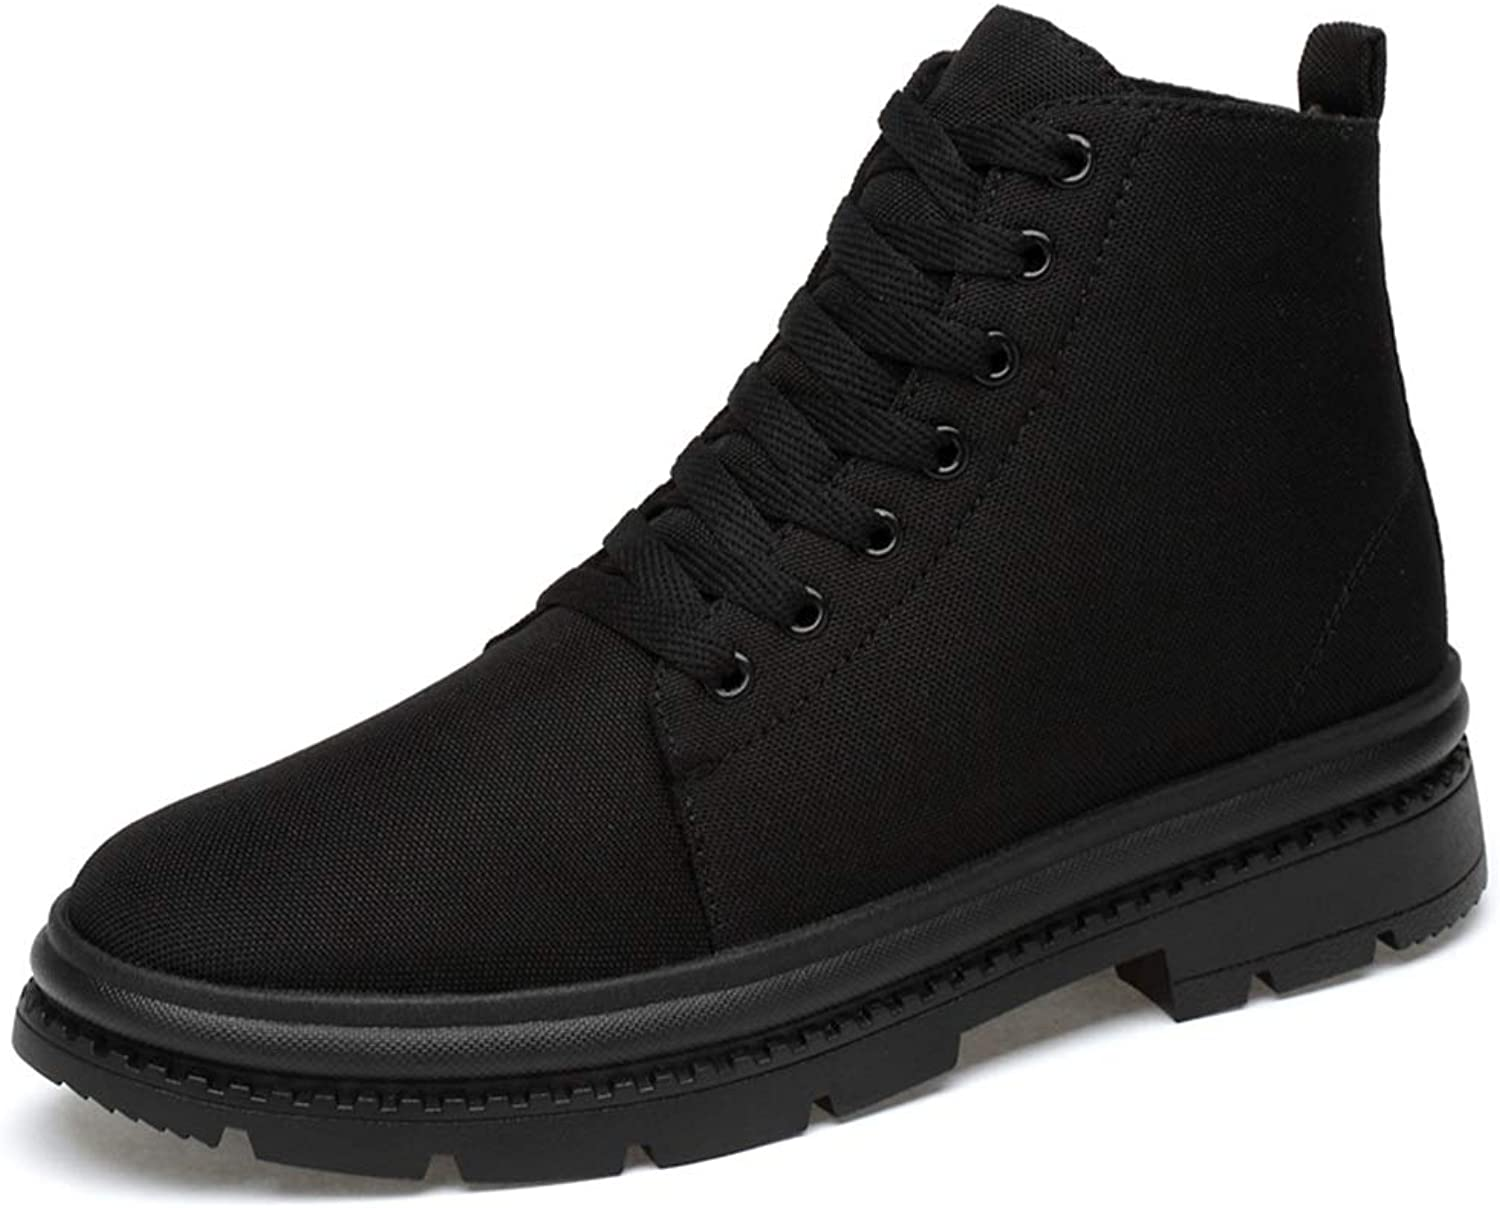 Men's Ankle Boots Canvas Vamp Casual High Top Comfortable Simple Fleece Lined Warm shoes (Conventional Optional)